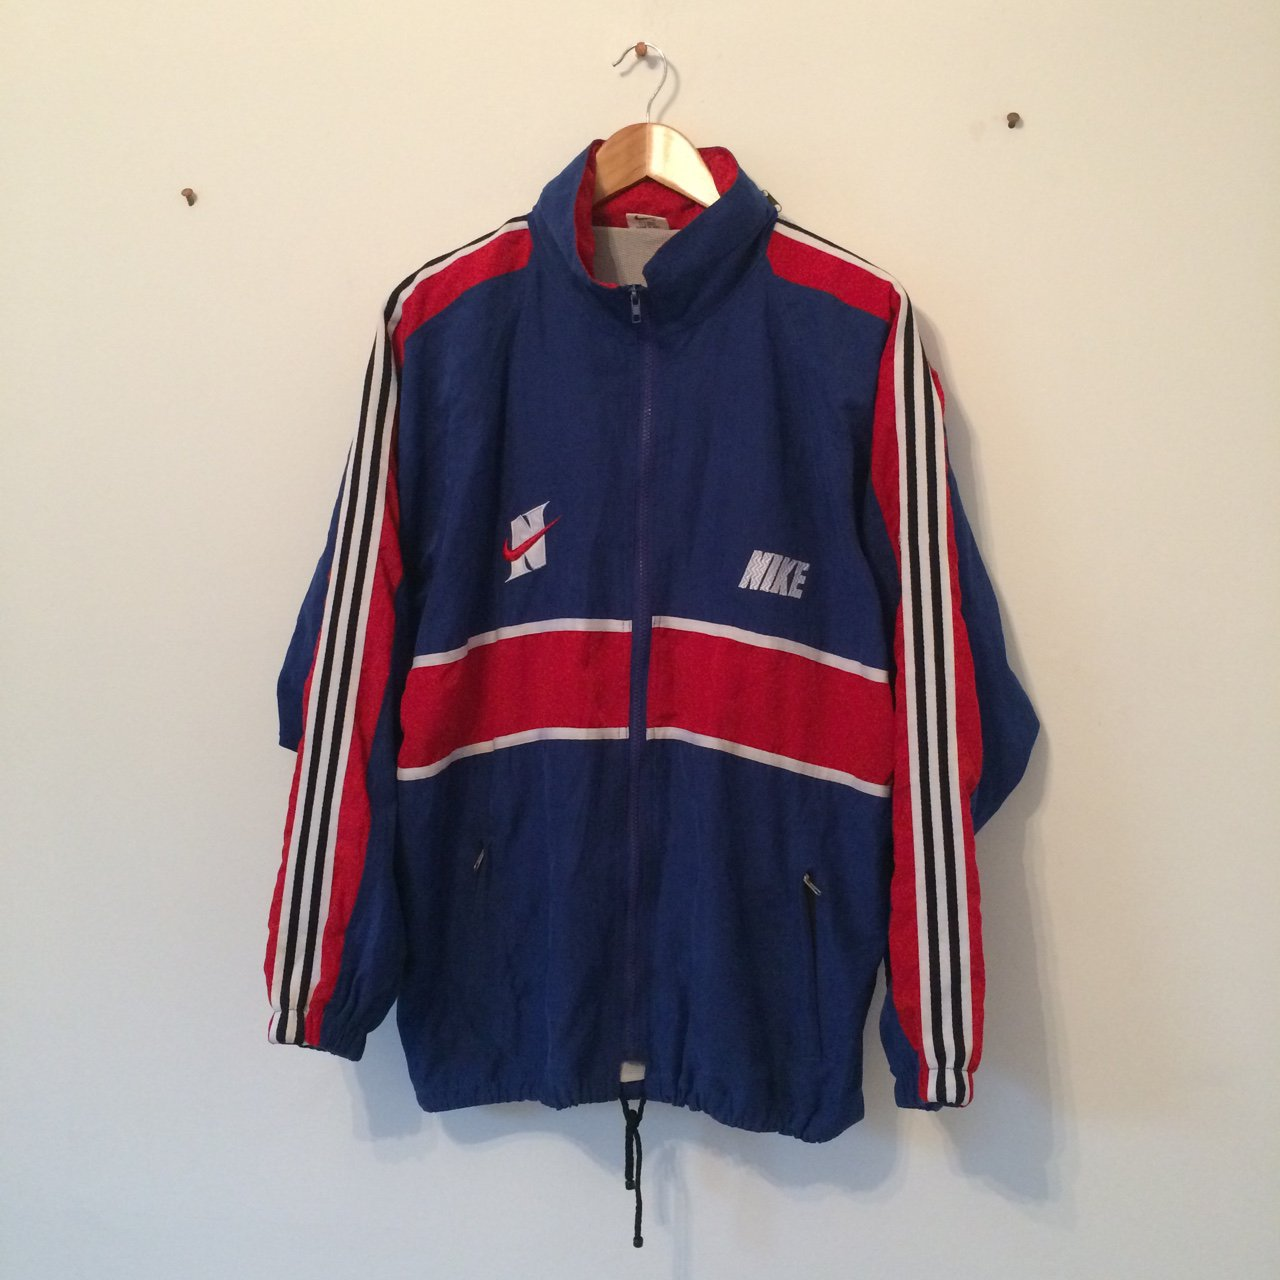 joshuawhiting. 2 years ago. United Kingdom. Vintage Nike air track jacket  ... a8ec71f7f